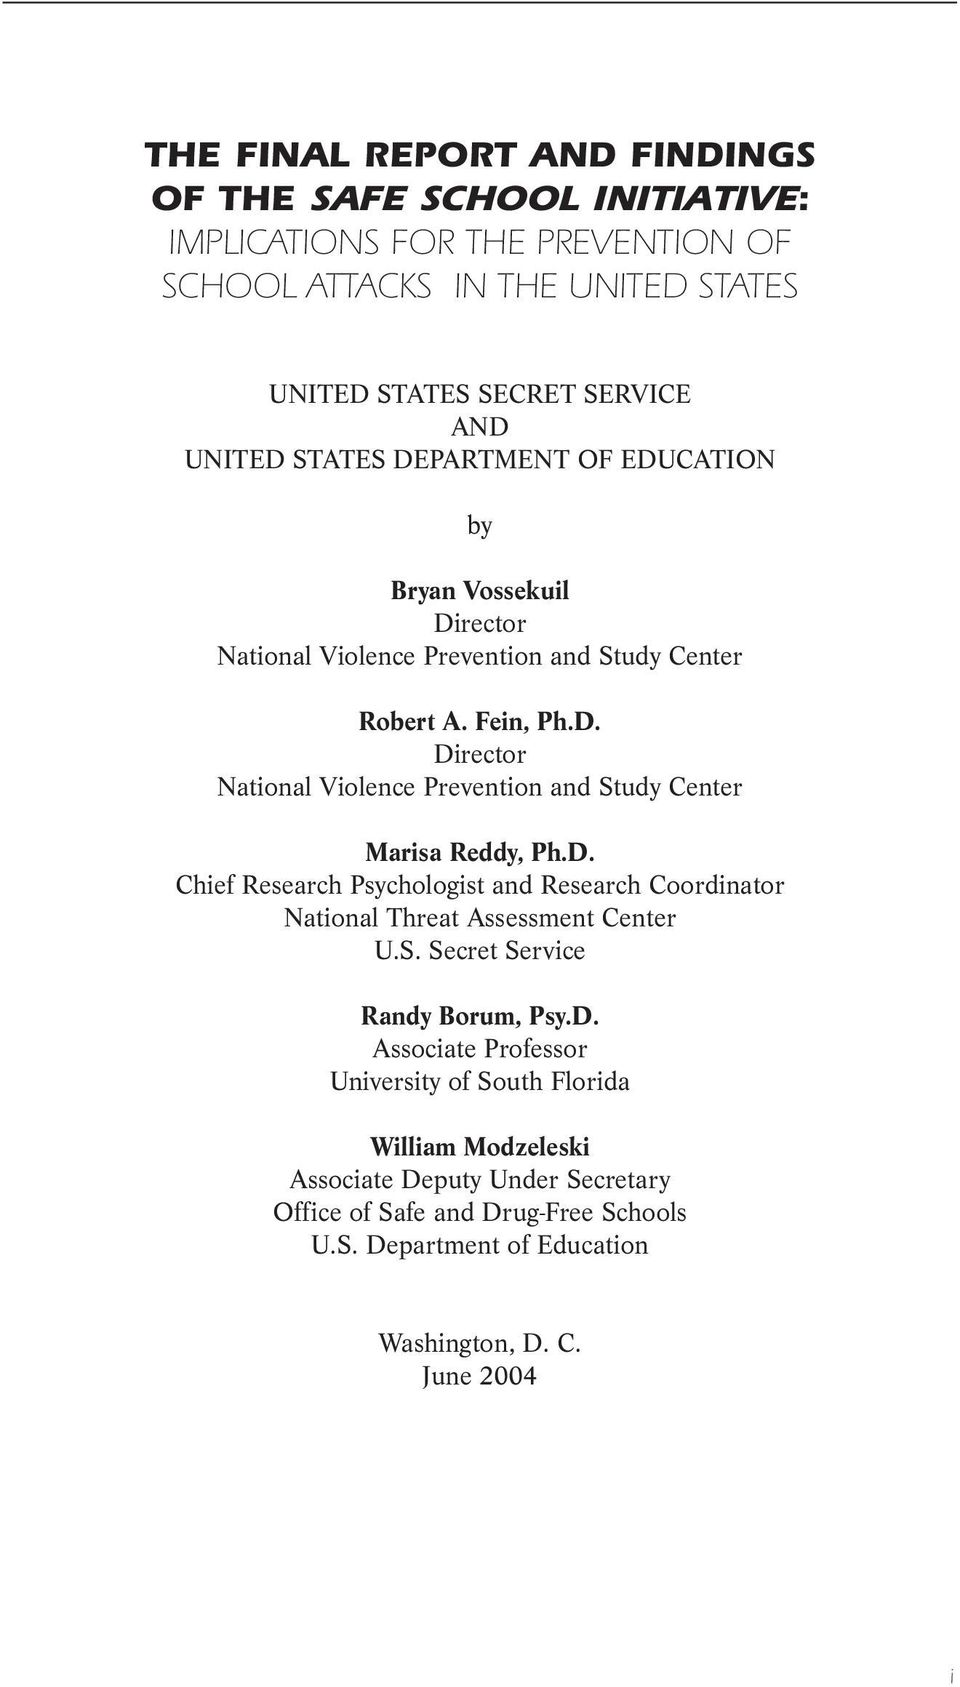 D. Chief Research Psychologist and Research Coordinator National Threat Assessment Center U.S. Secret Service Randy Borum, Psy.D. Associate Professor University of South Florida William Modzeleski Associate Deputy Under Secretary Office of Safe and Drug-Free Schools U.